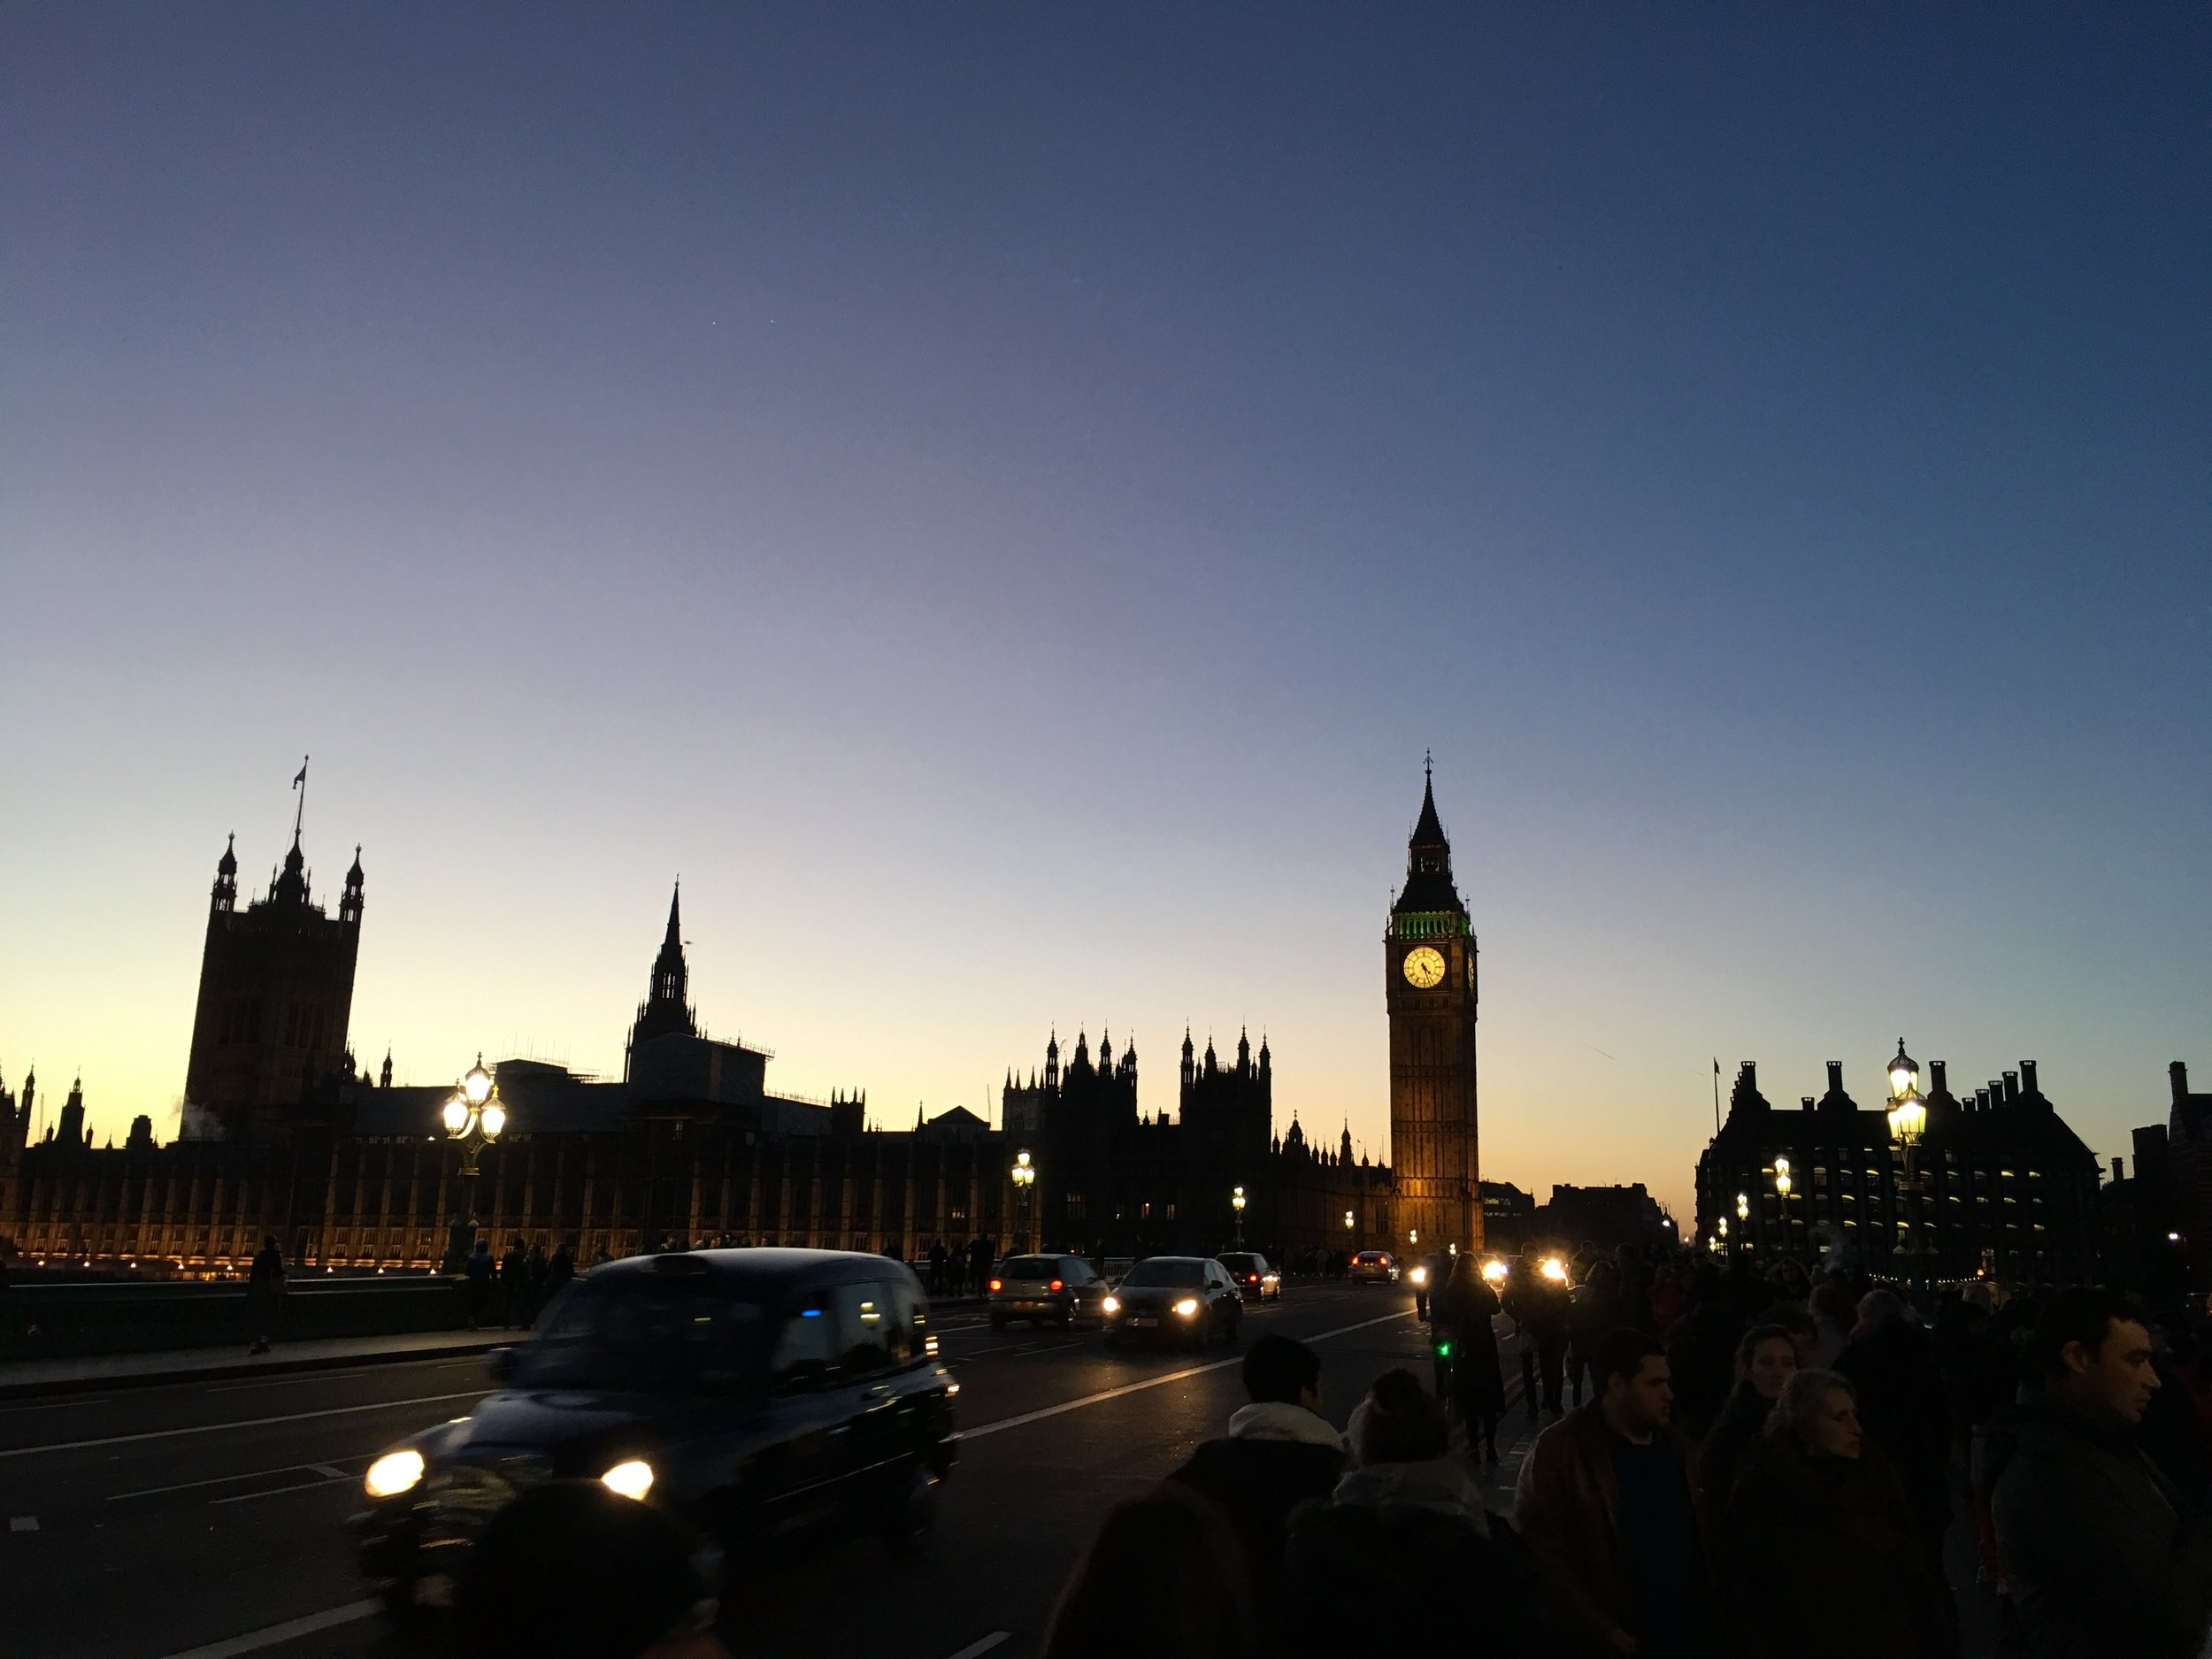 Elizabeth Tower (aka Big Ben) at sundown, London